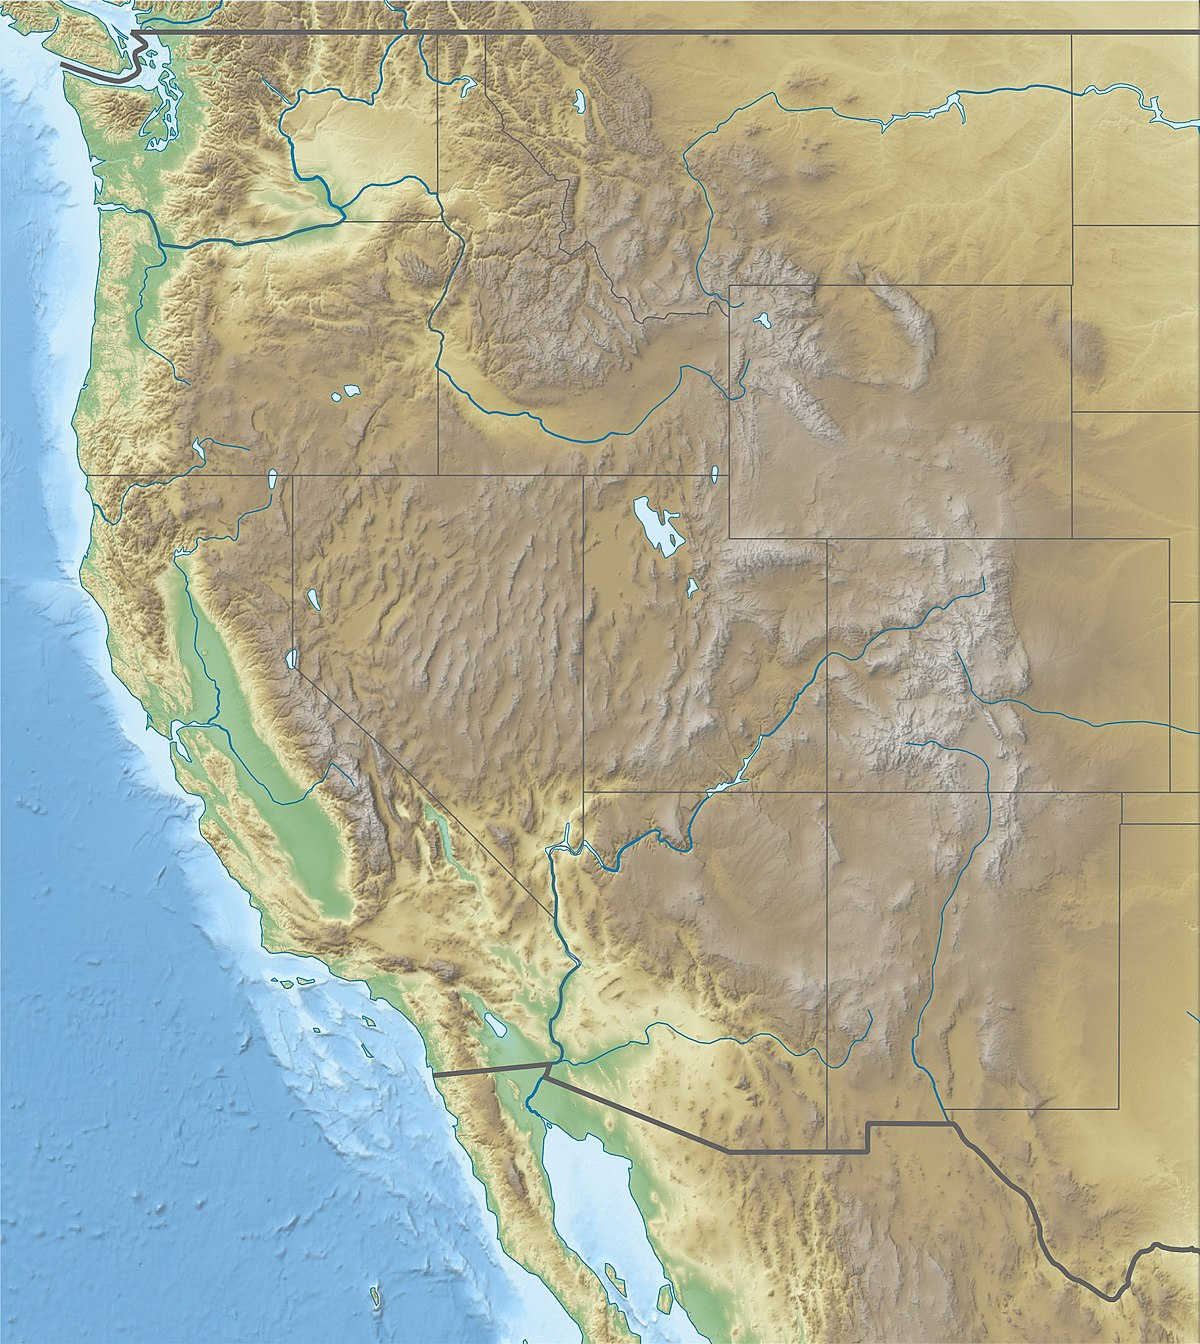 Jackson Hole Wikipedia - Jackson hole us map